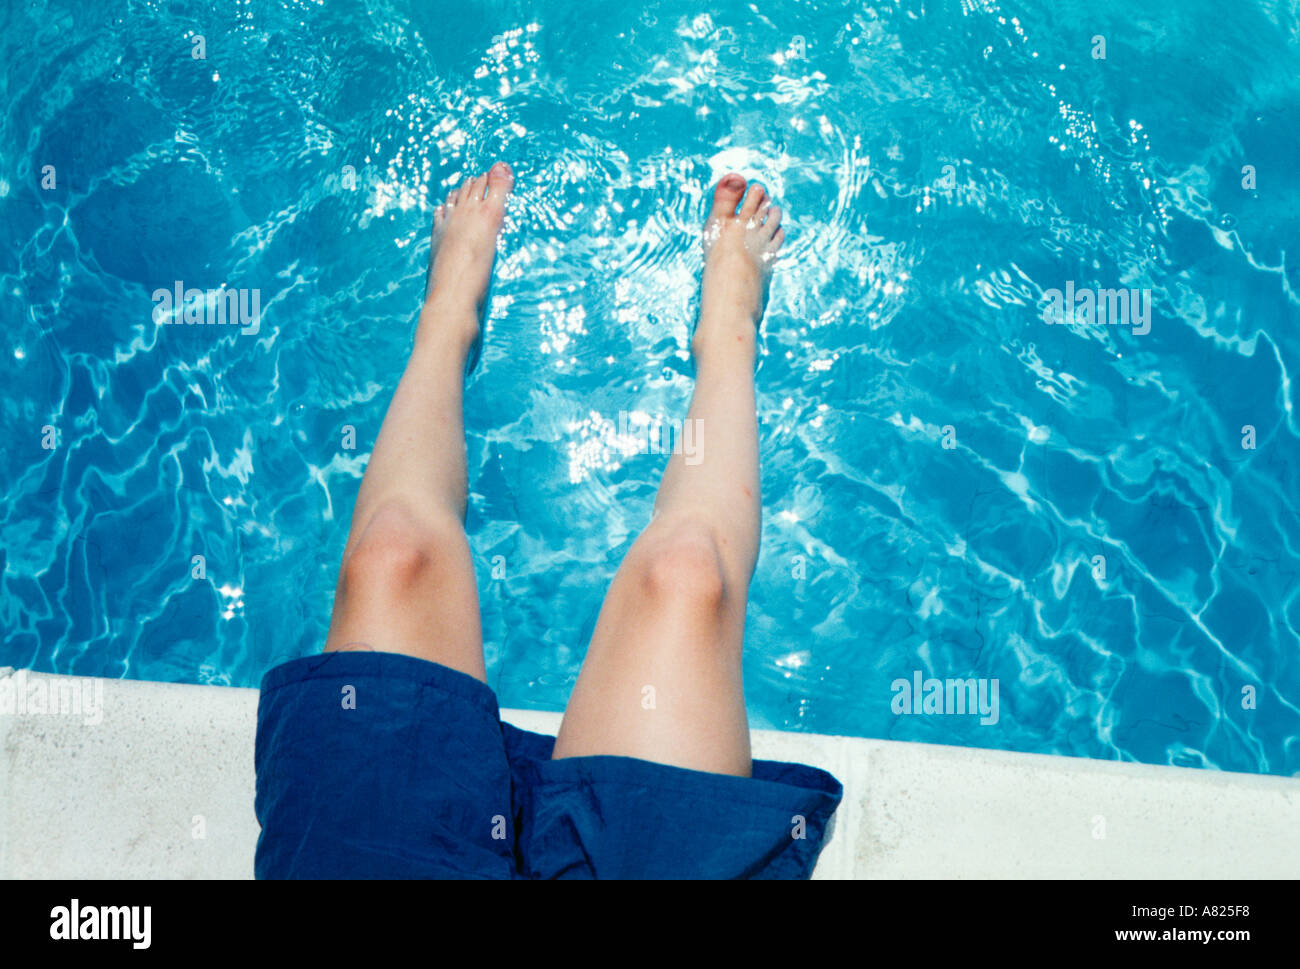 Lazy days at the pool - Stock Image